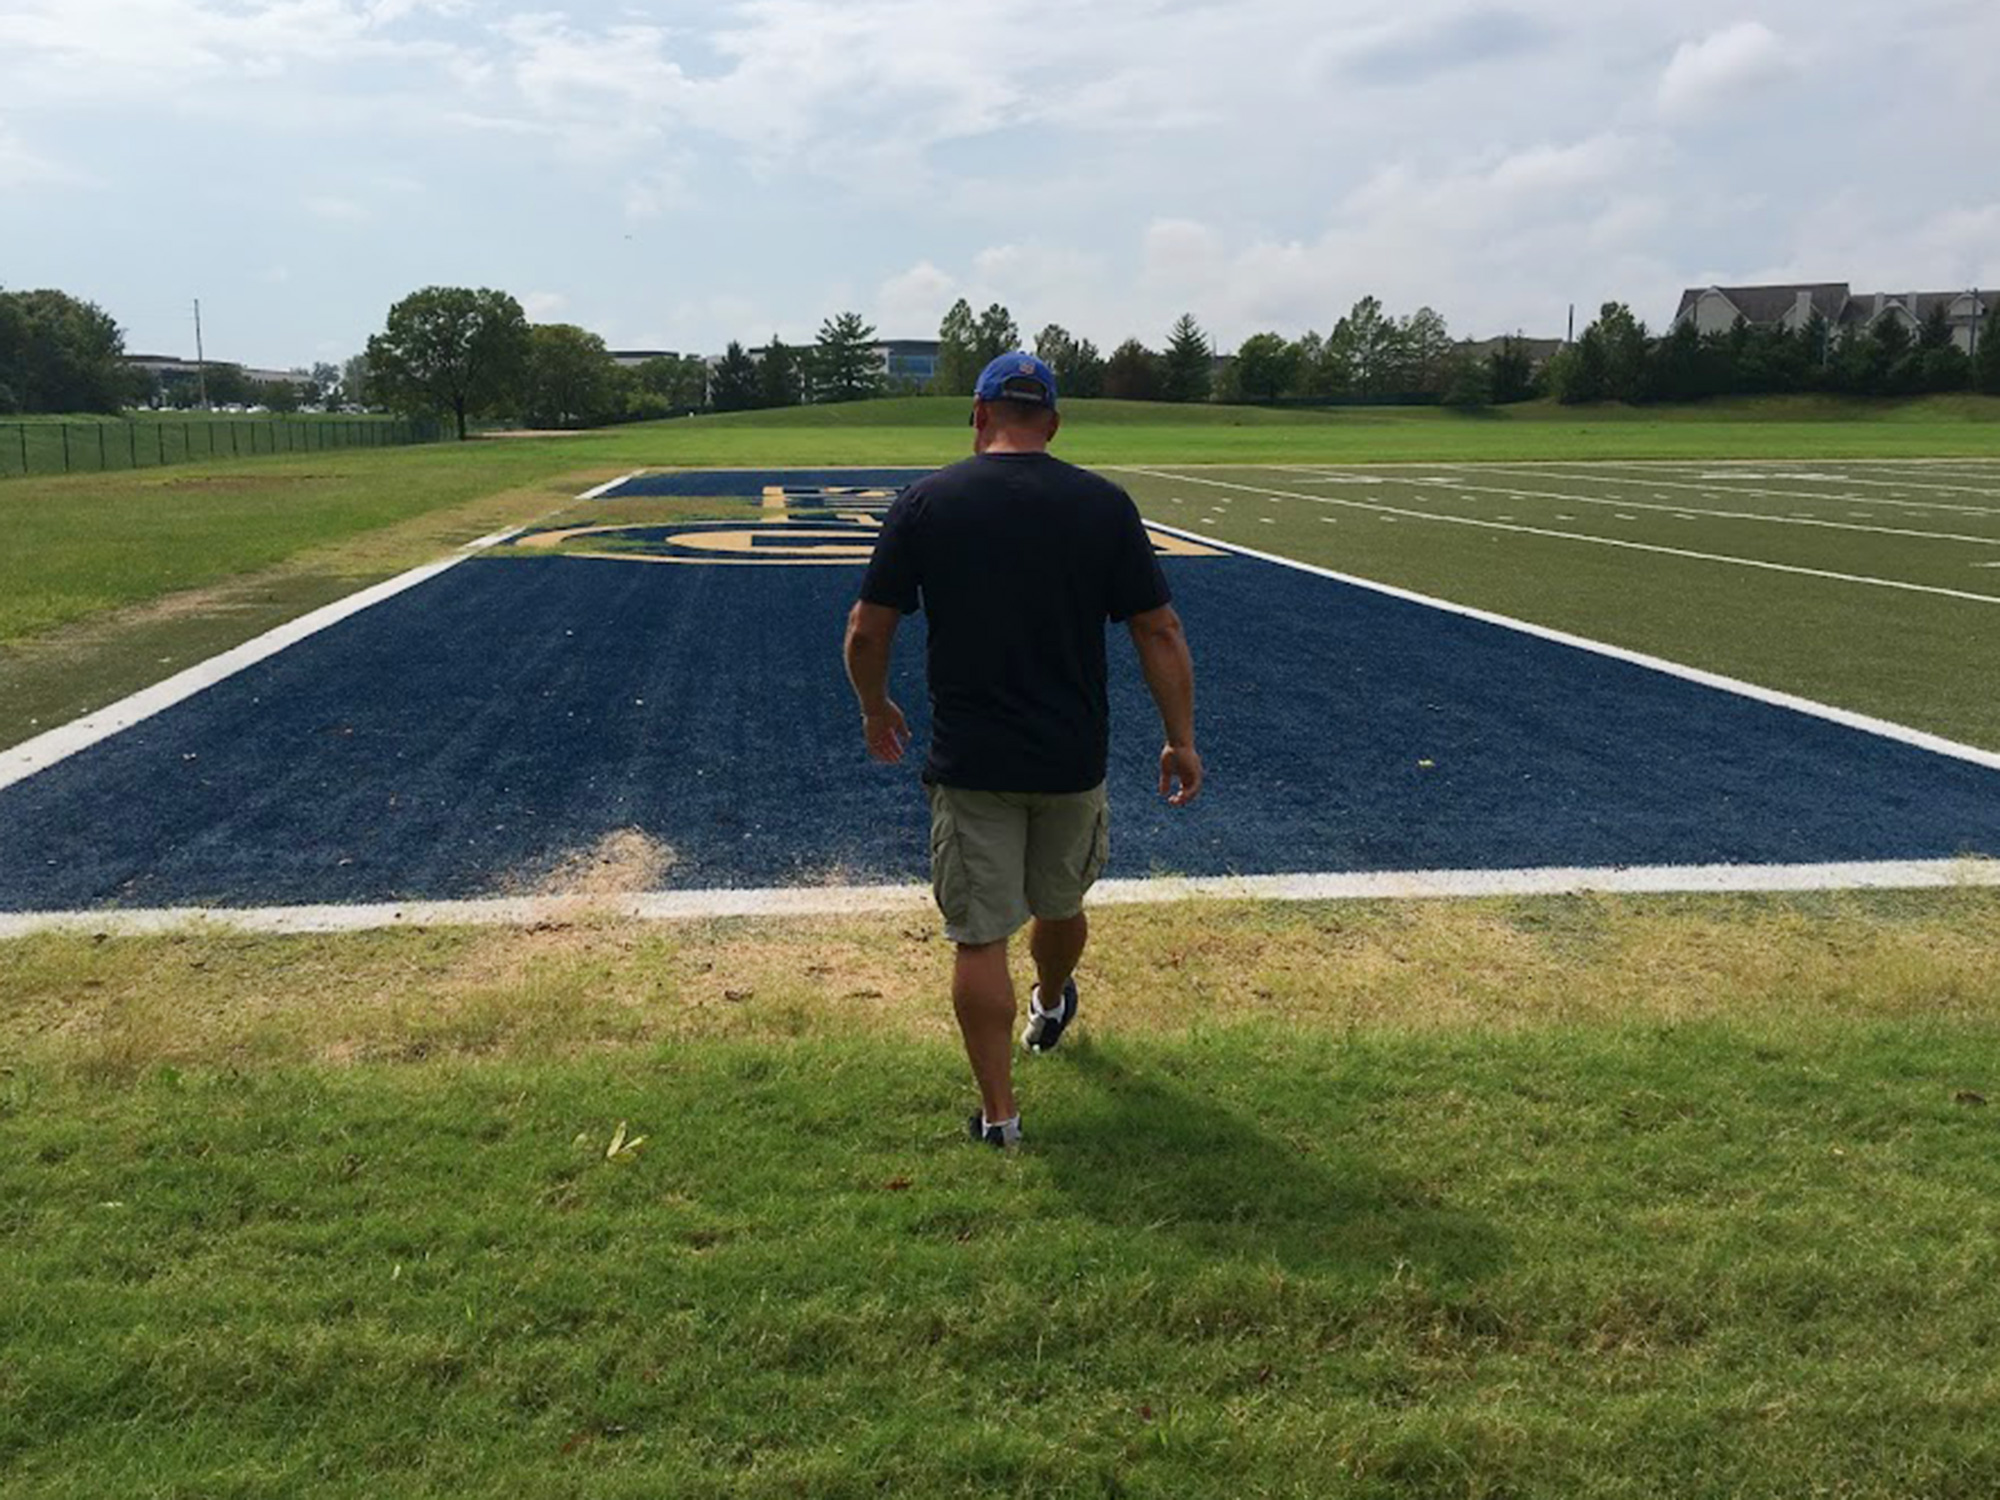 Matt Litzsinger on the dead patches of grass at Rams park.